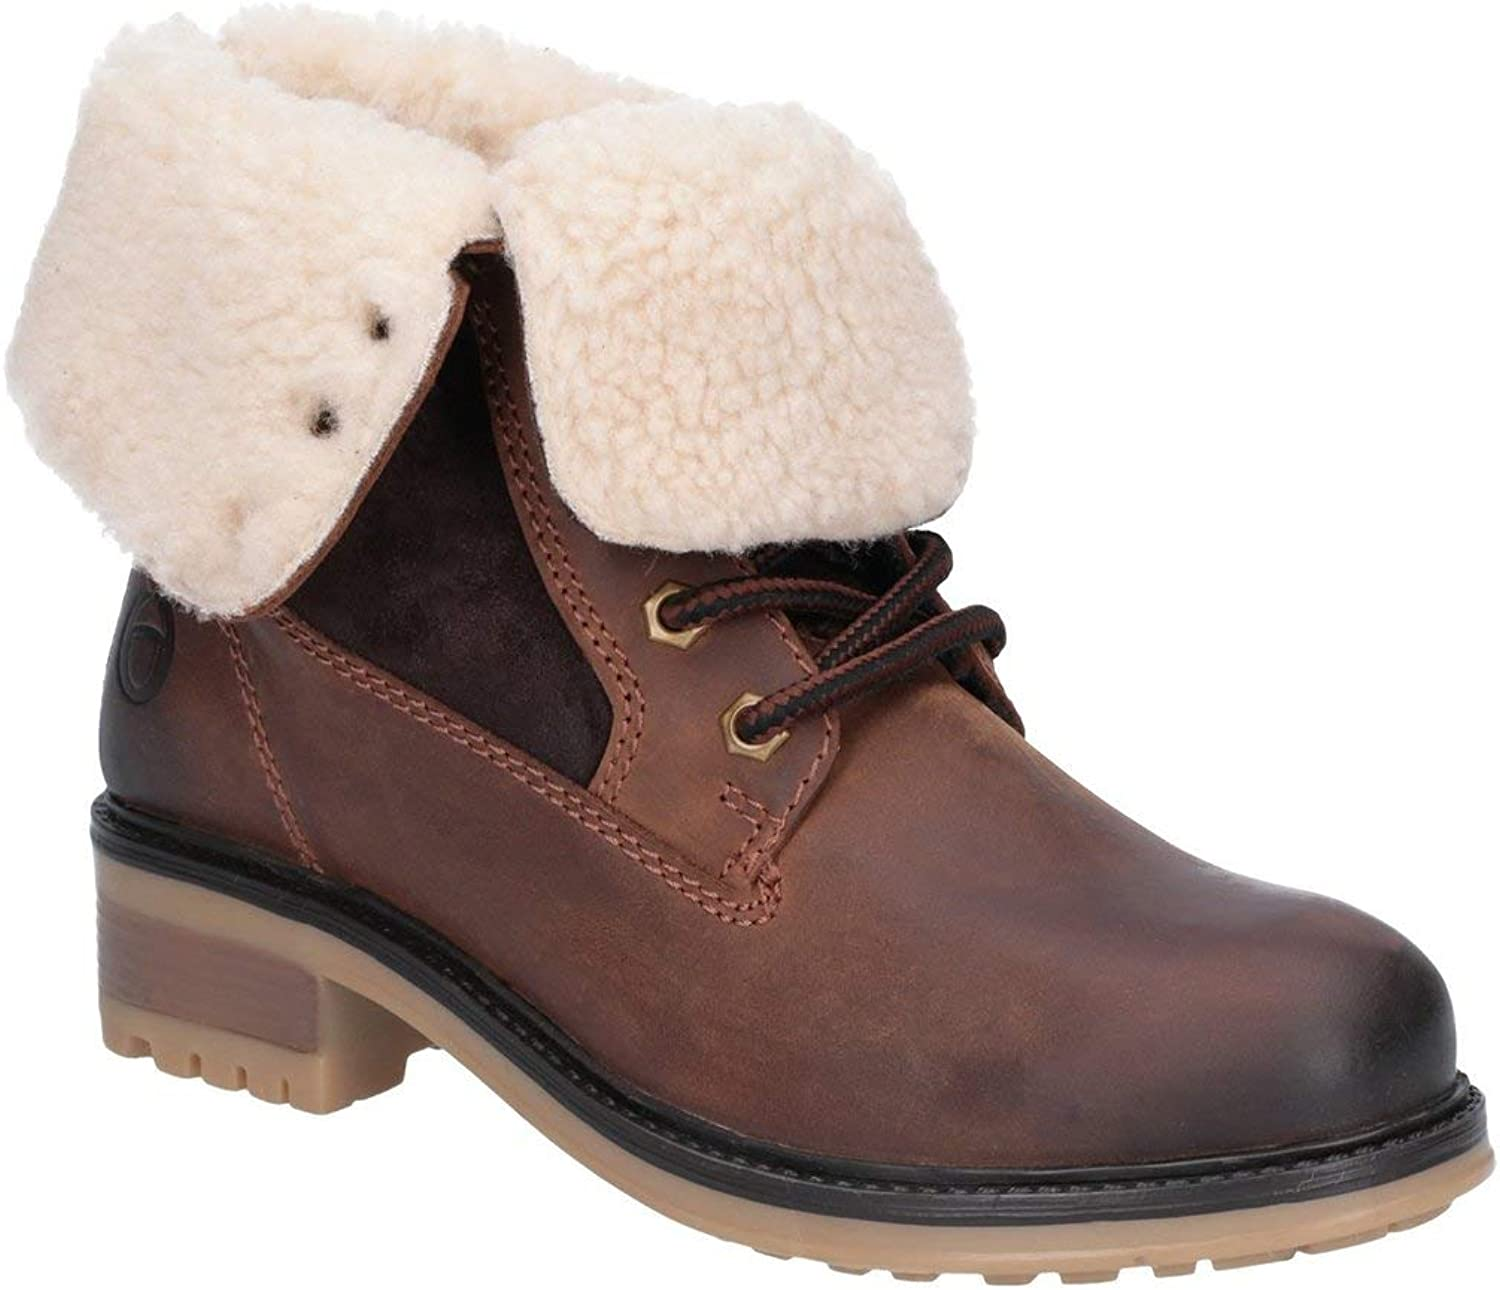 Cotswold Womens Ladies Marsden Lace Up Leather Mid Boot